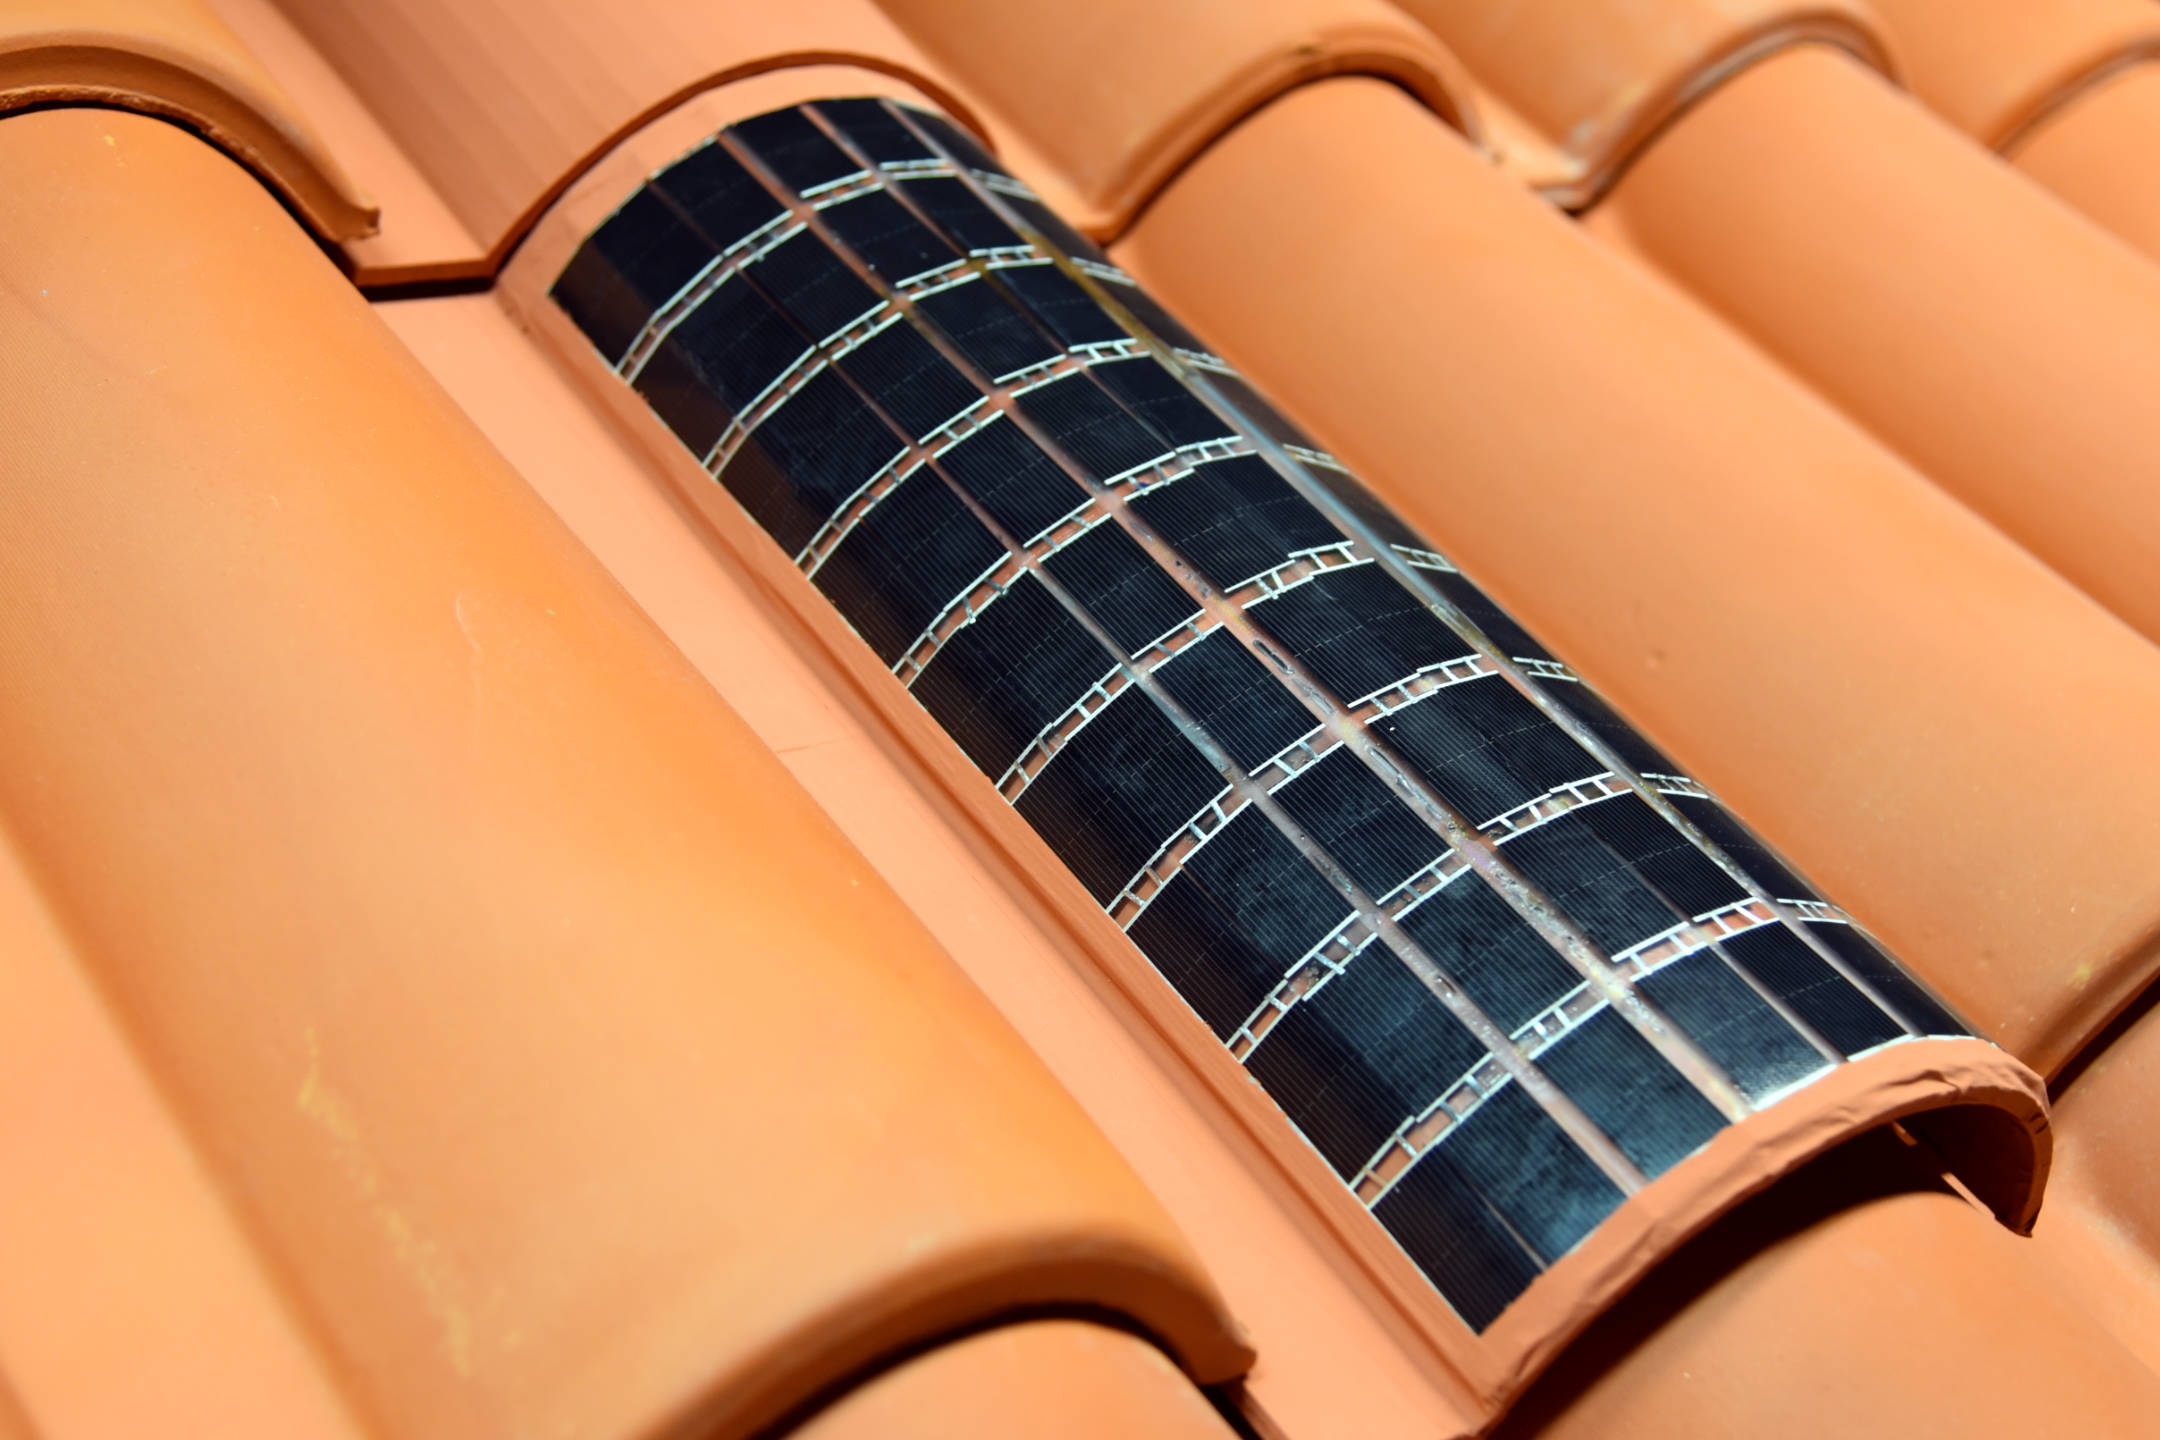 Prototype SmartPVSkin roofing tile using a pixelated array of solar cells.